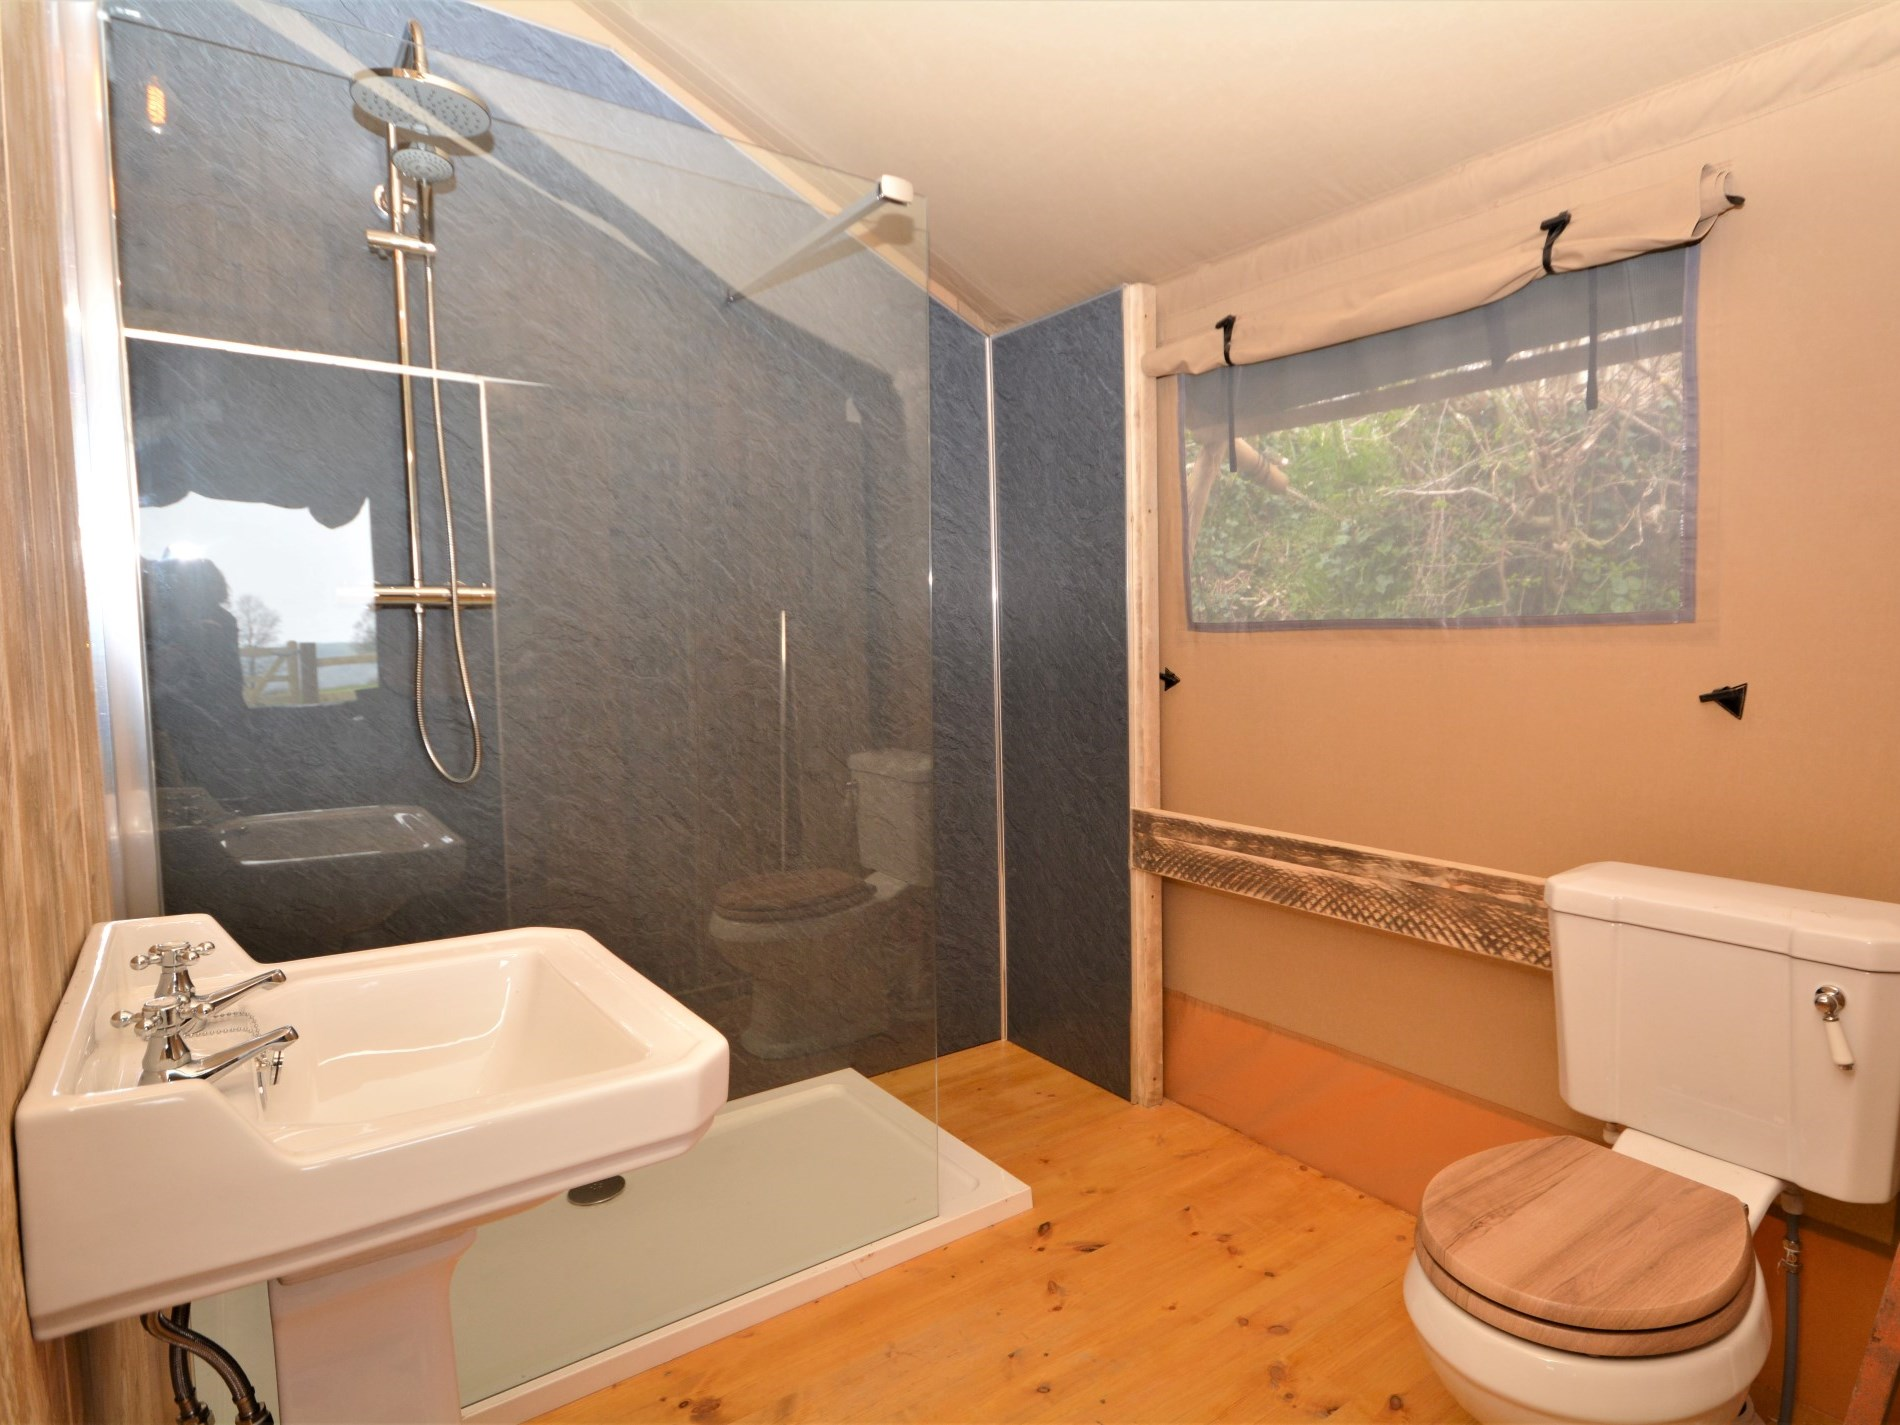 1 Bedroom Cottage in St. Austell, Cornwall